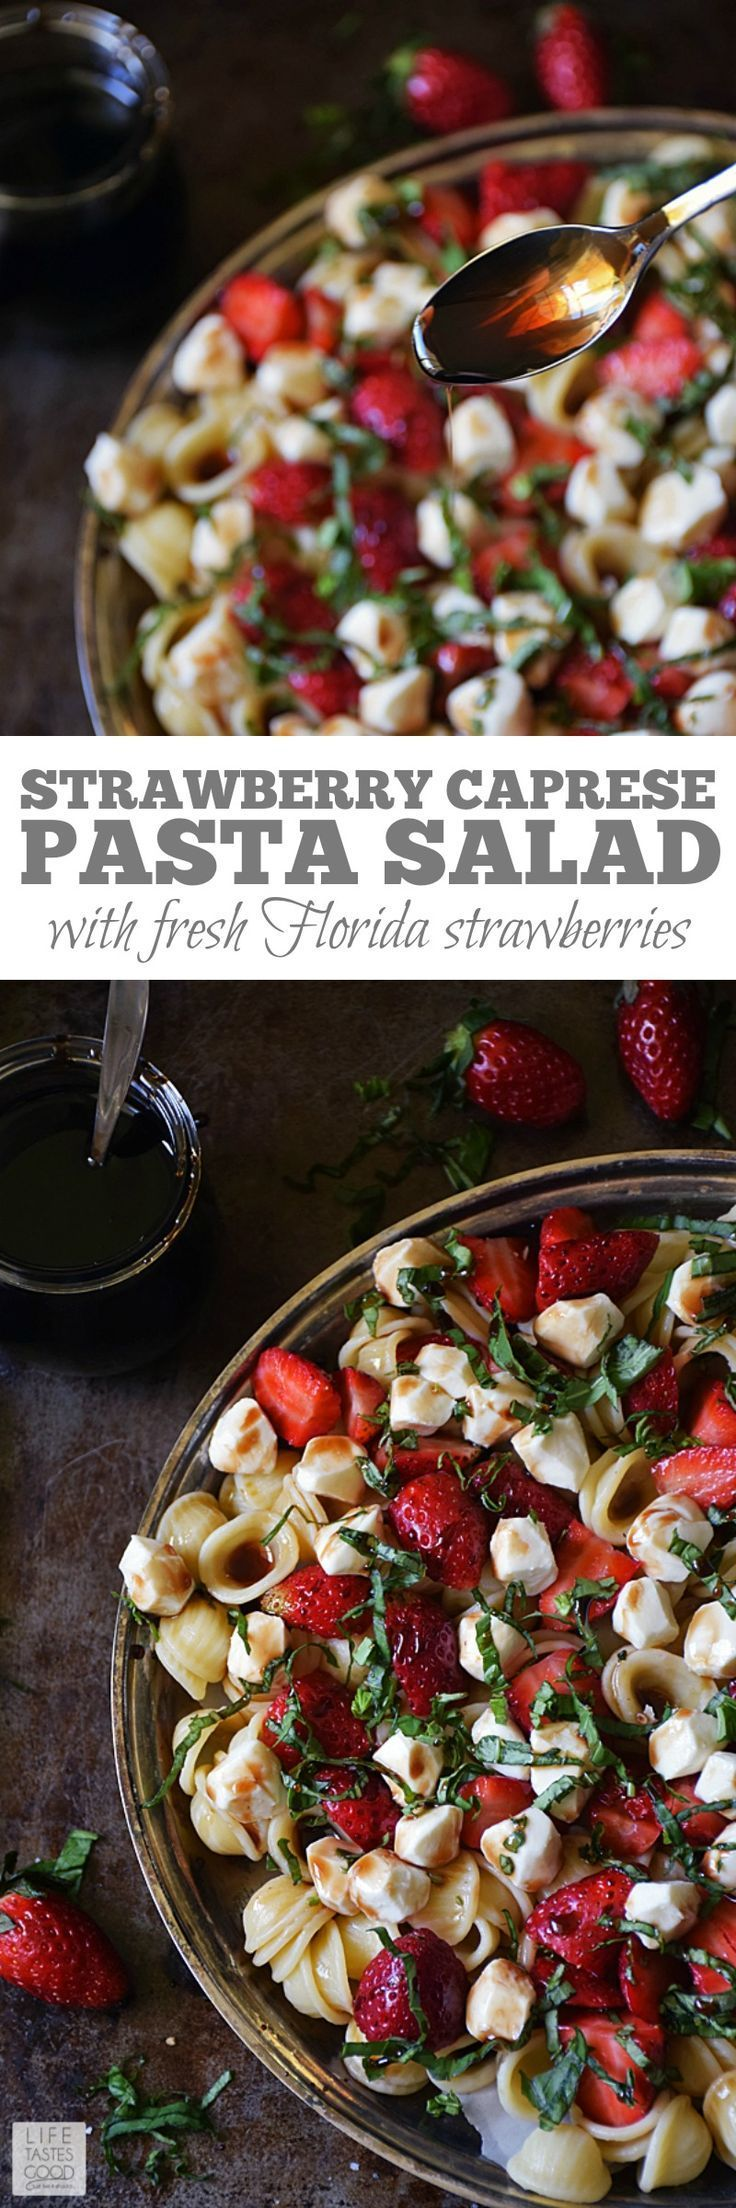 Strawberry Caprese Pasta Salad   by Life Tastes Good is a twist on the traditional Caprese Salad. Instead of tomatoes, I used sweet Florida strawberries for a refreshing change to this classic flavor combo!